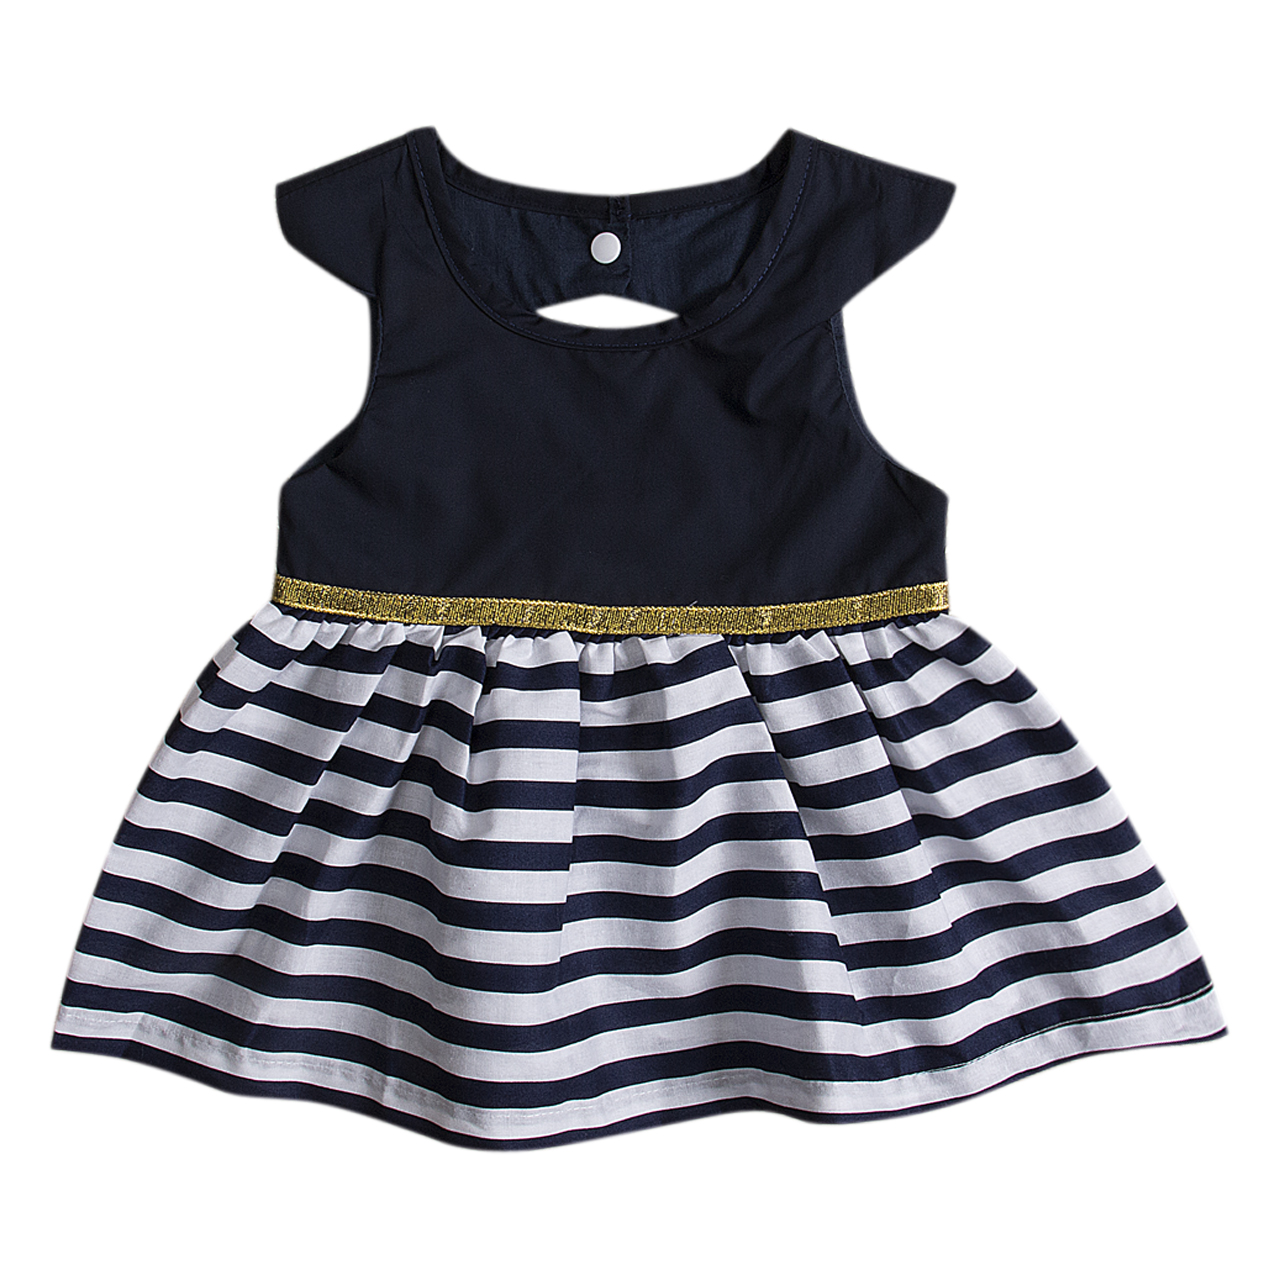 Fashion week Blue Cute dresses for girls pictures for woman